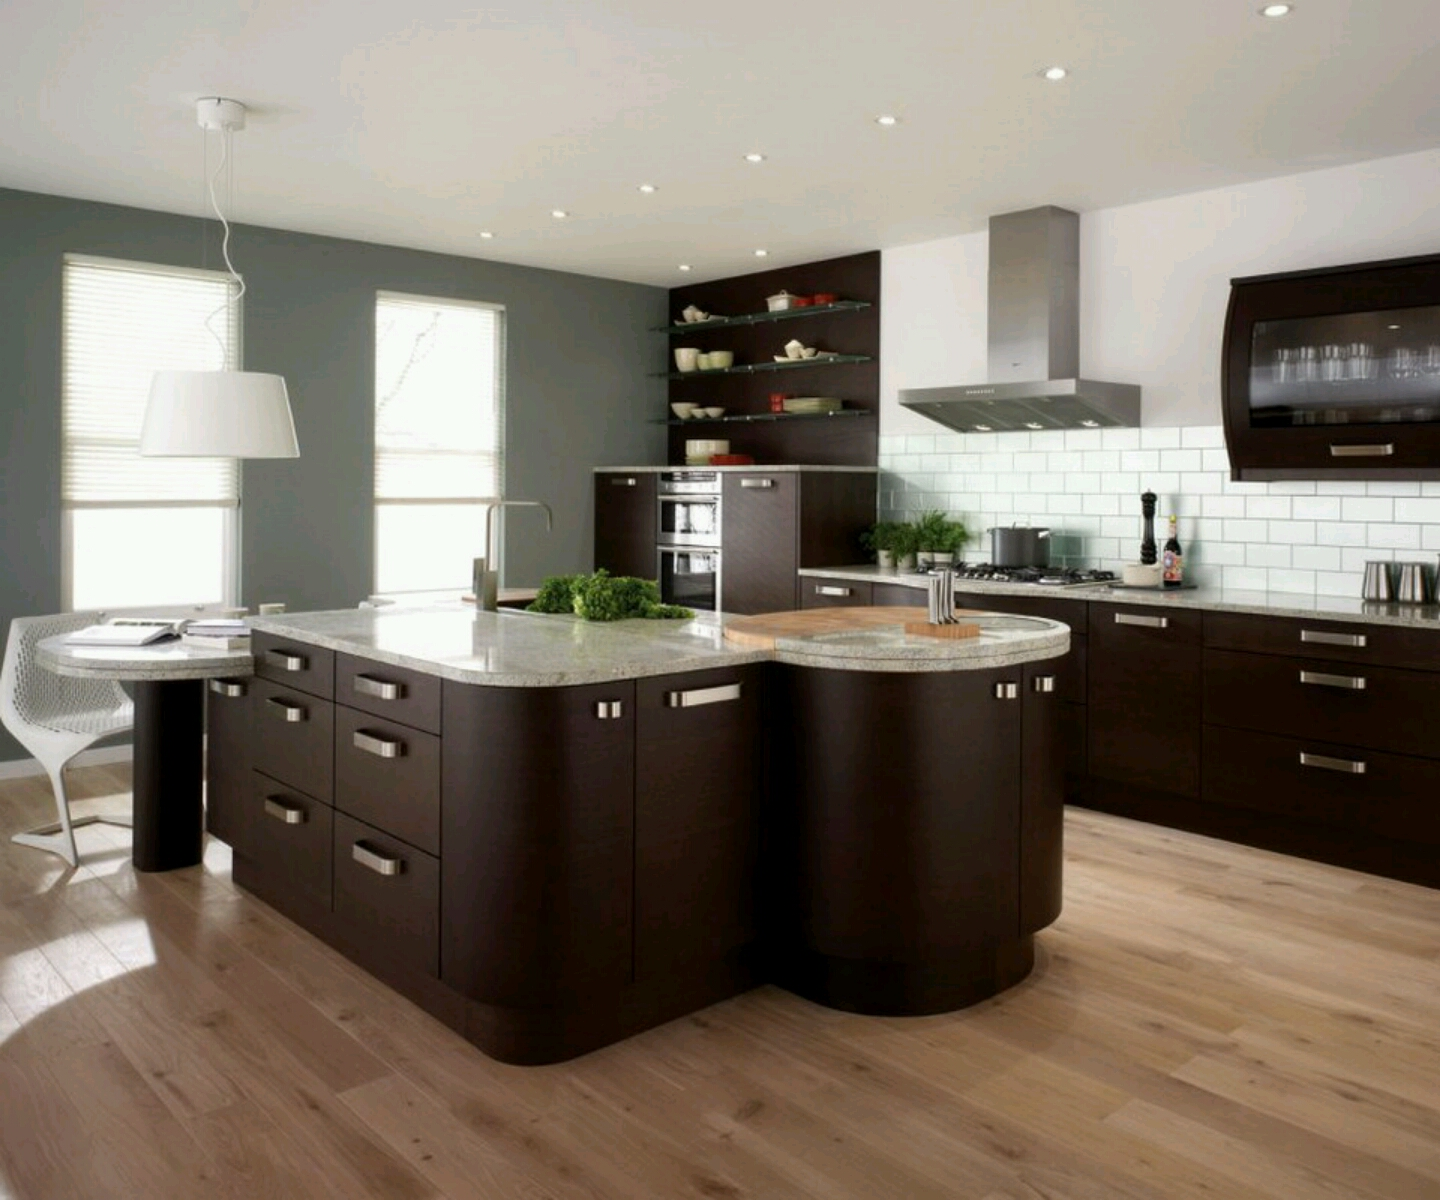 Kitchen Design Ideas Image Furniture Design For Your Home